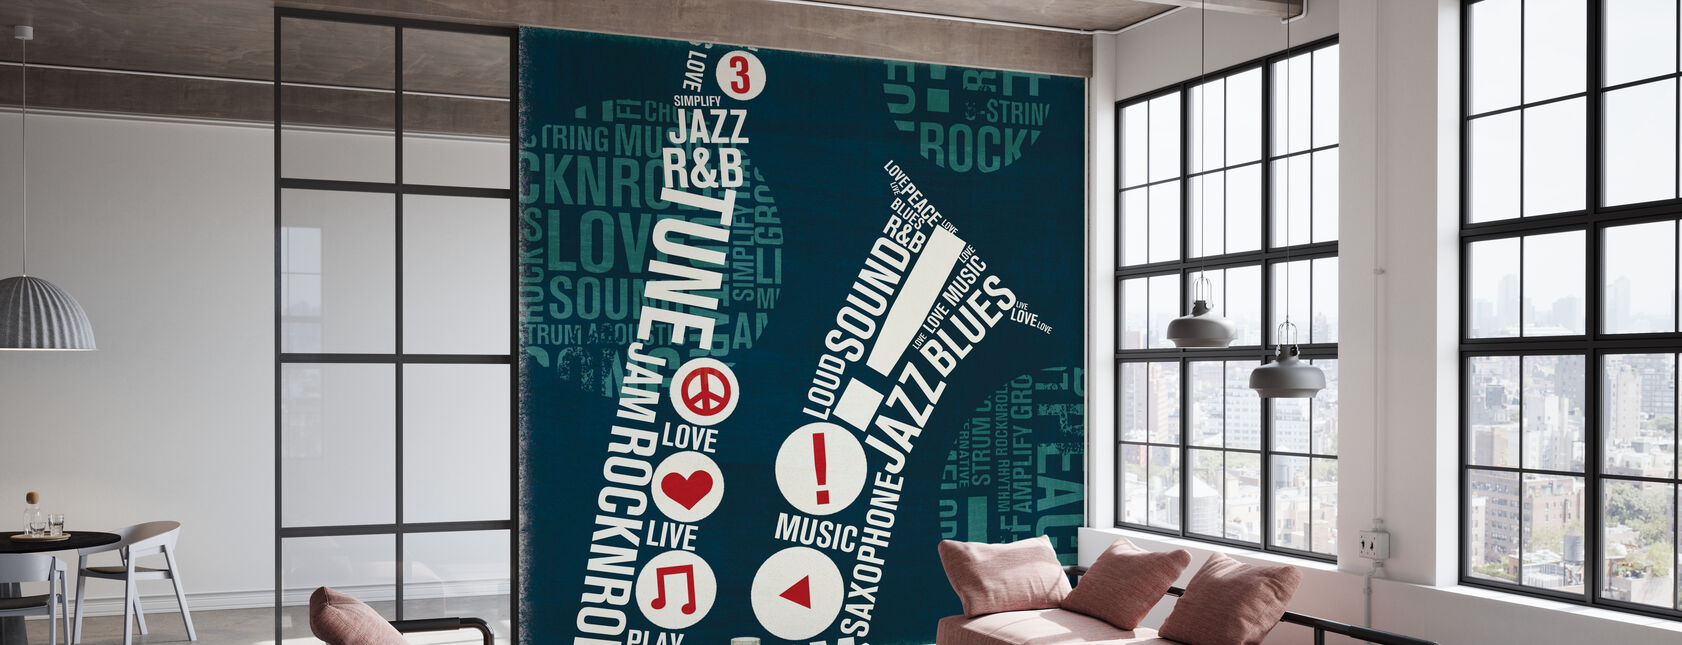 Type Sax Square - Wallpaper - Office